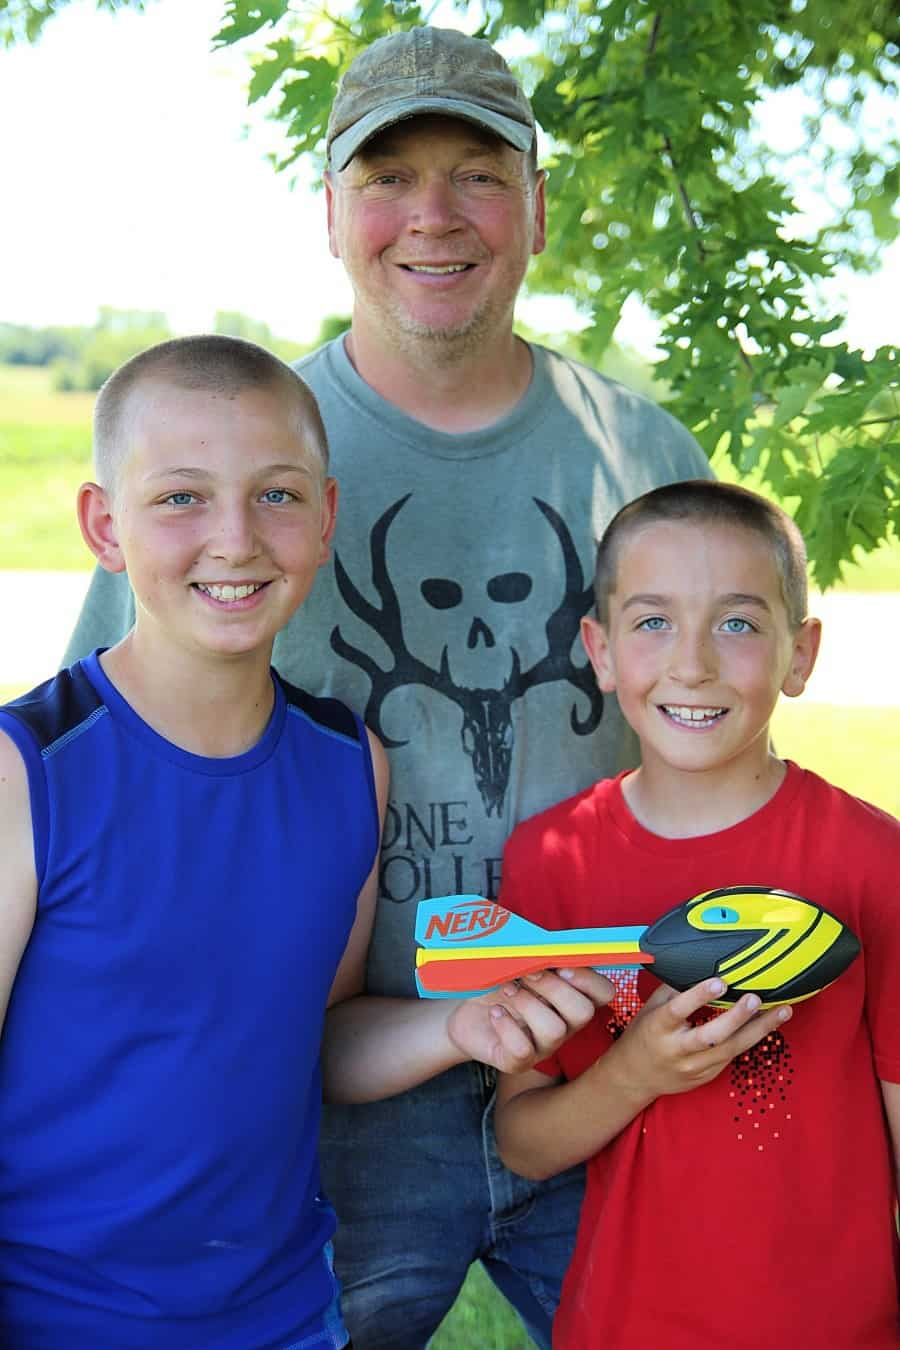 25 Affordable Or Free Kids Activities For Your Backyard - Nerf Vortex Football